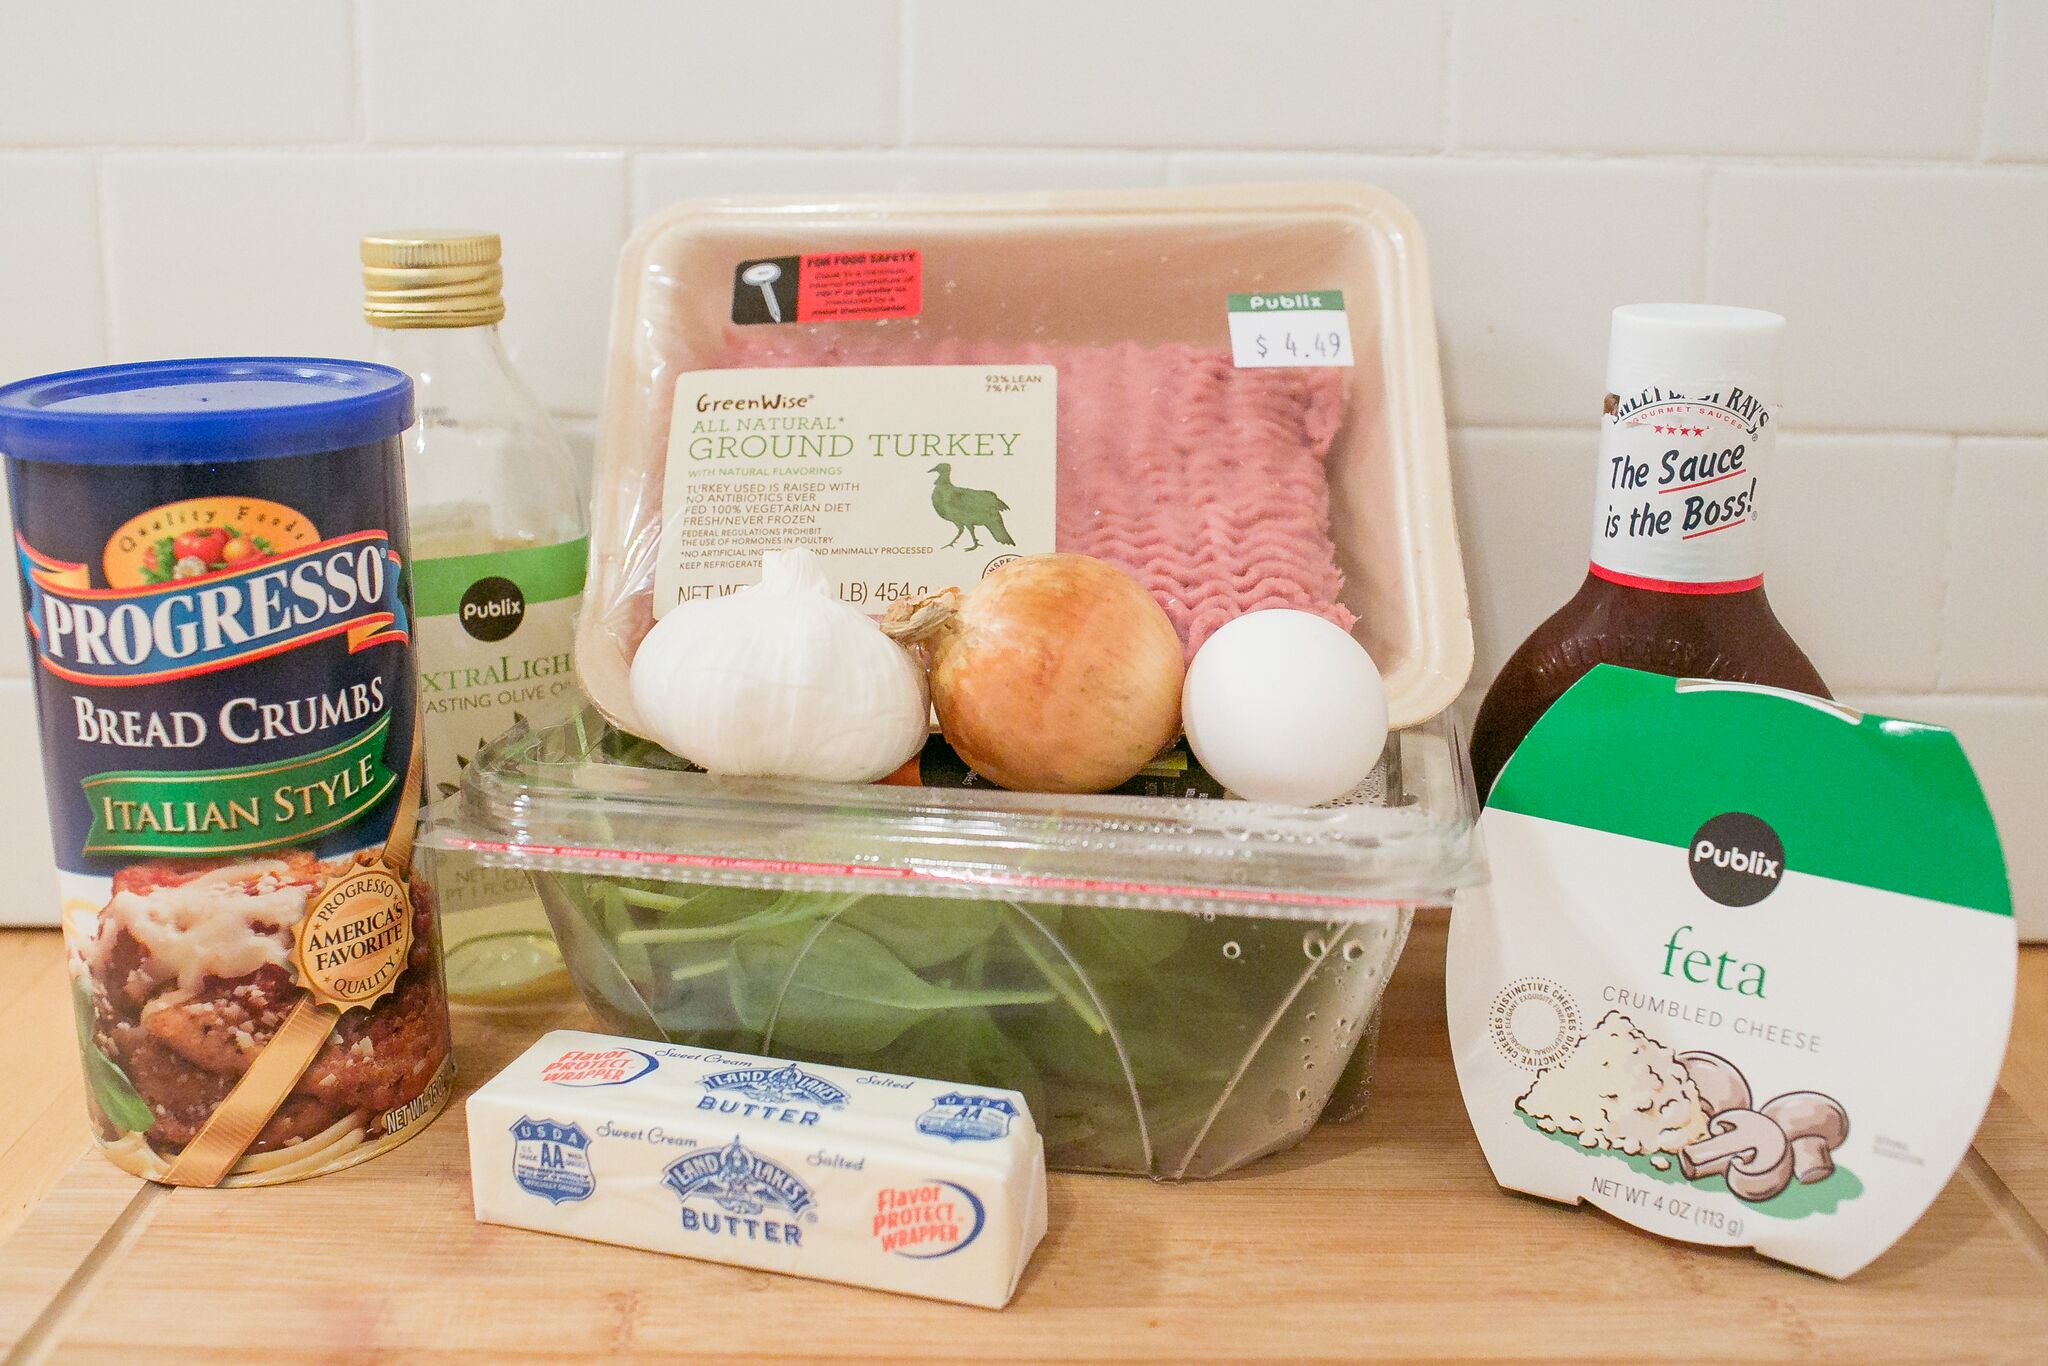 Ingredients for this simple meatloaf recipe